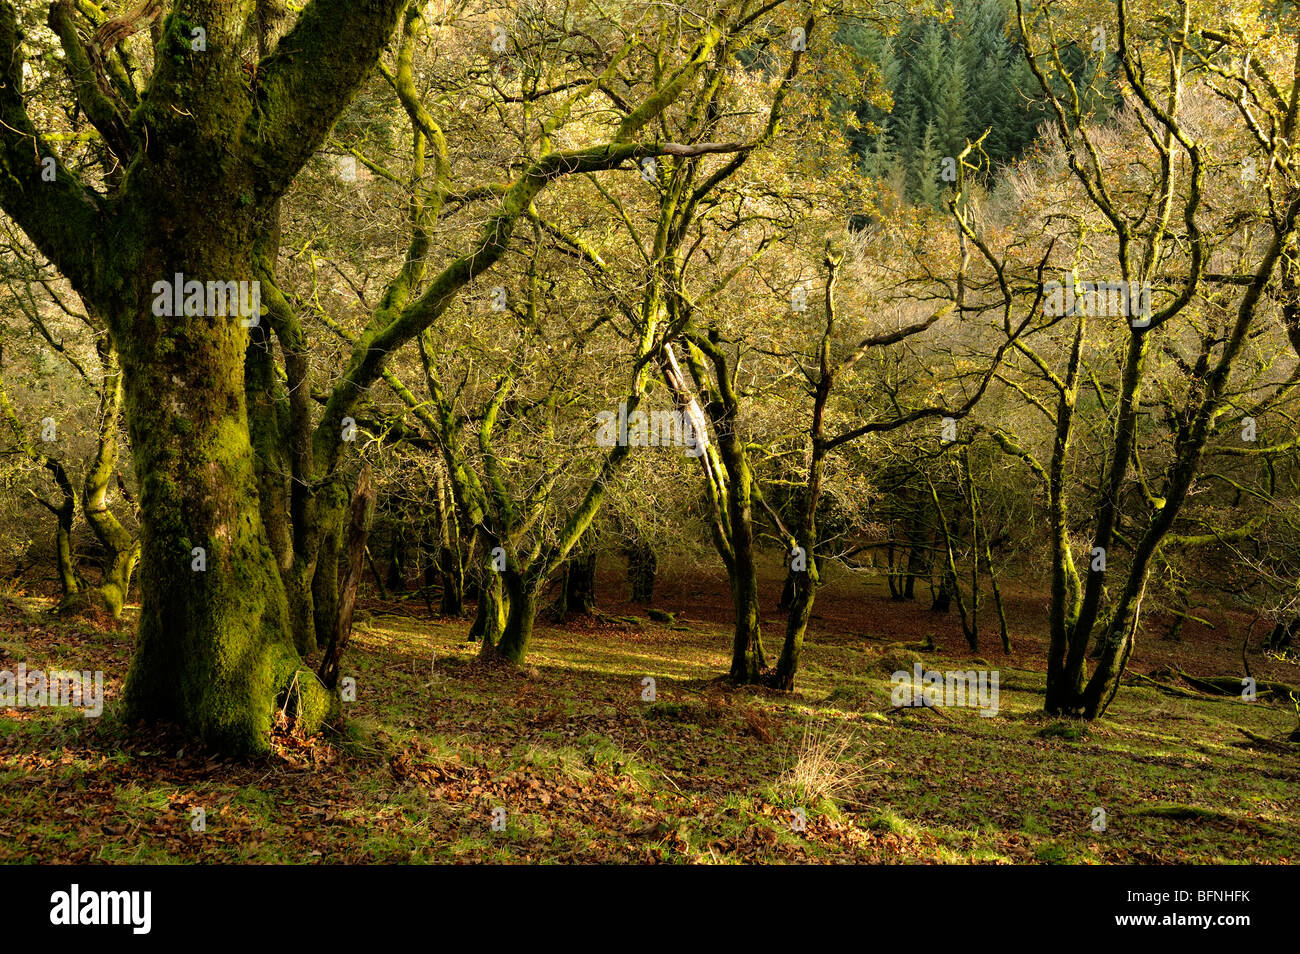 A twisted woodland area on a hillside in Exmoor lit by dappled light - Stock Image